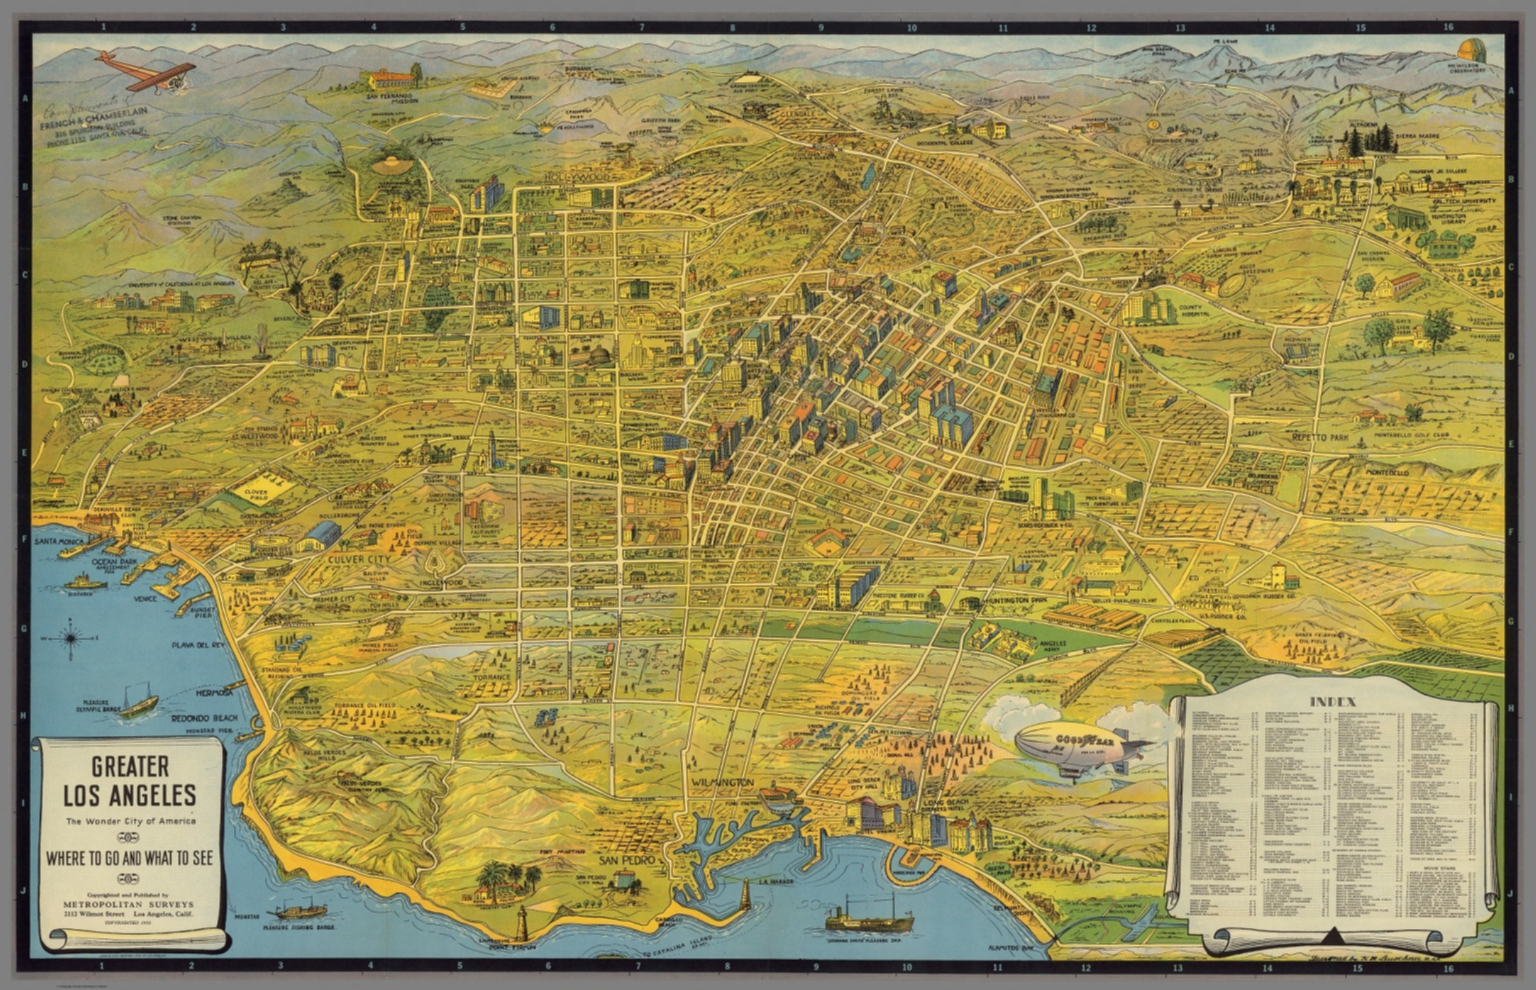 Map Of America Los Angeles.Greater Los Angeles The Wonder City Of America Where To Go And